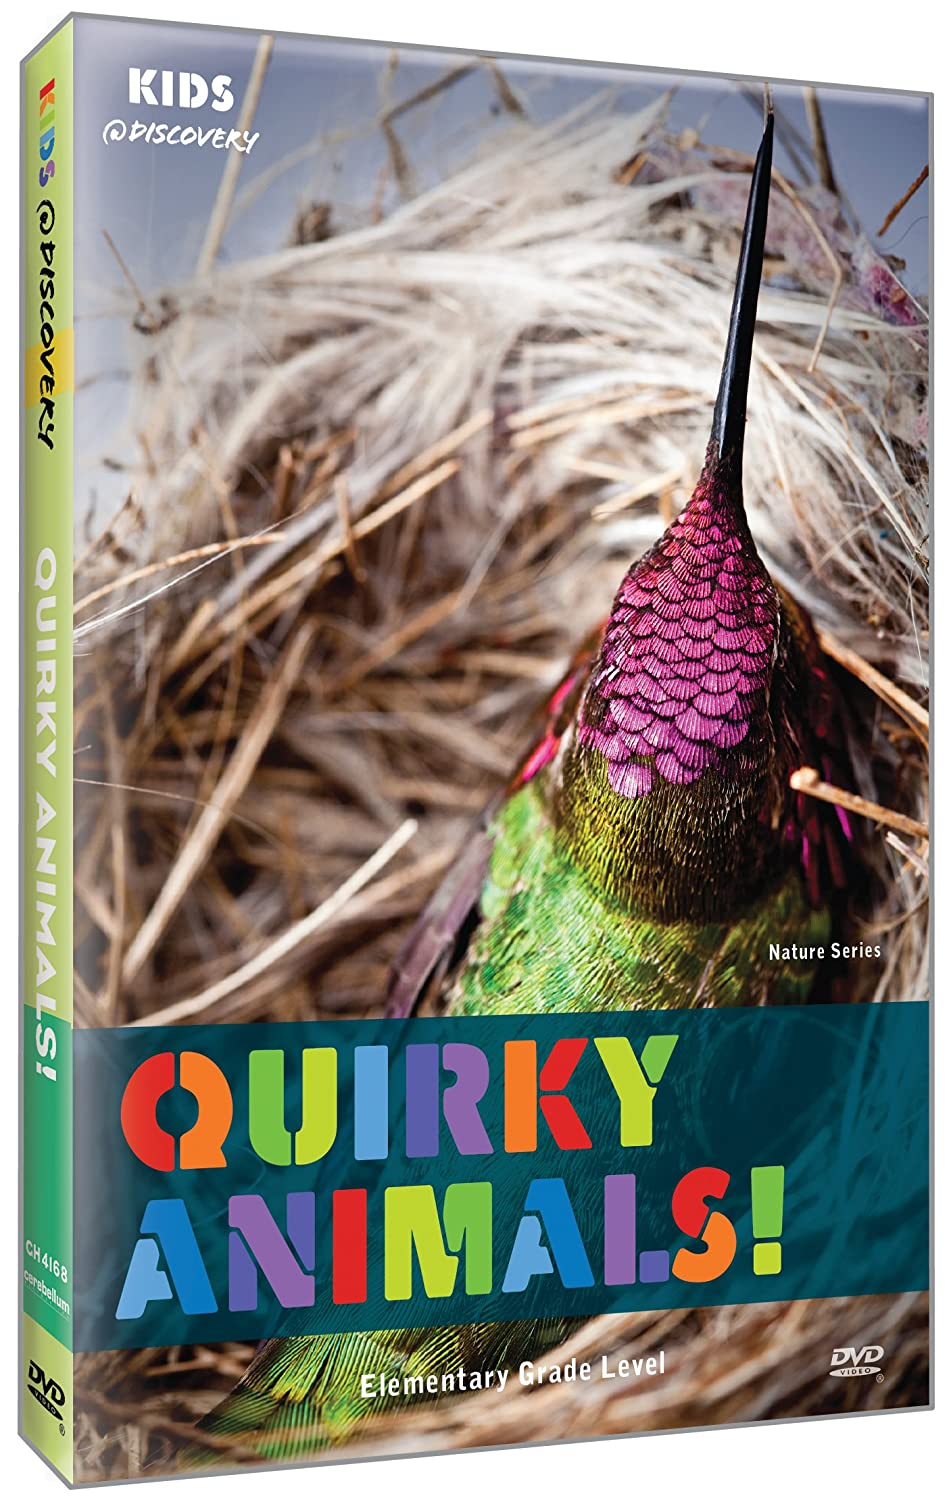 Kids @ Discovery: Quirky Animals!